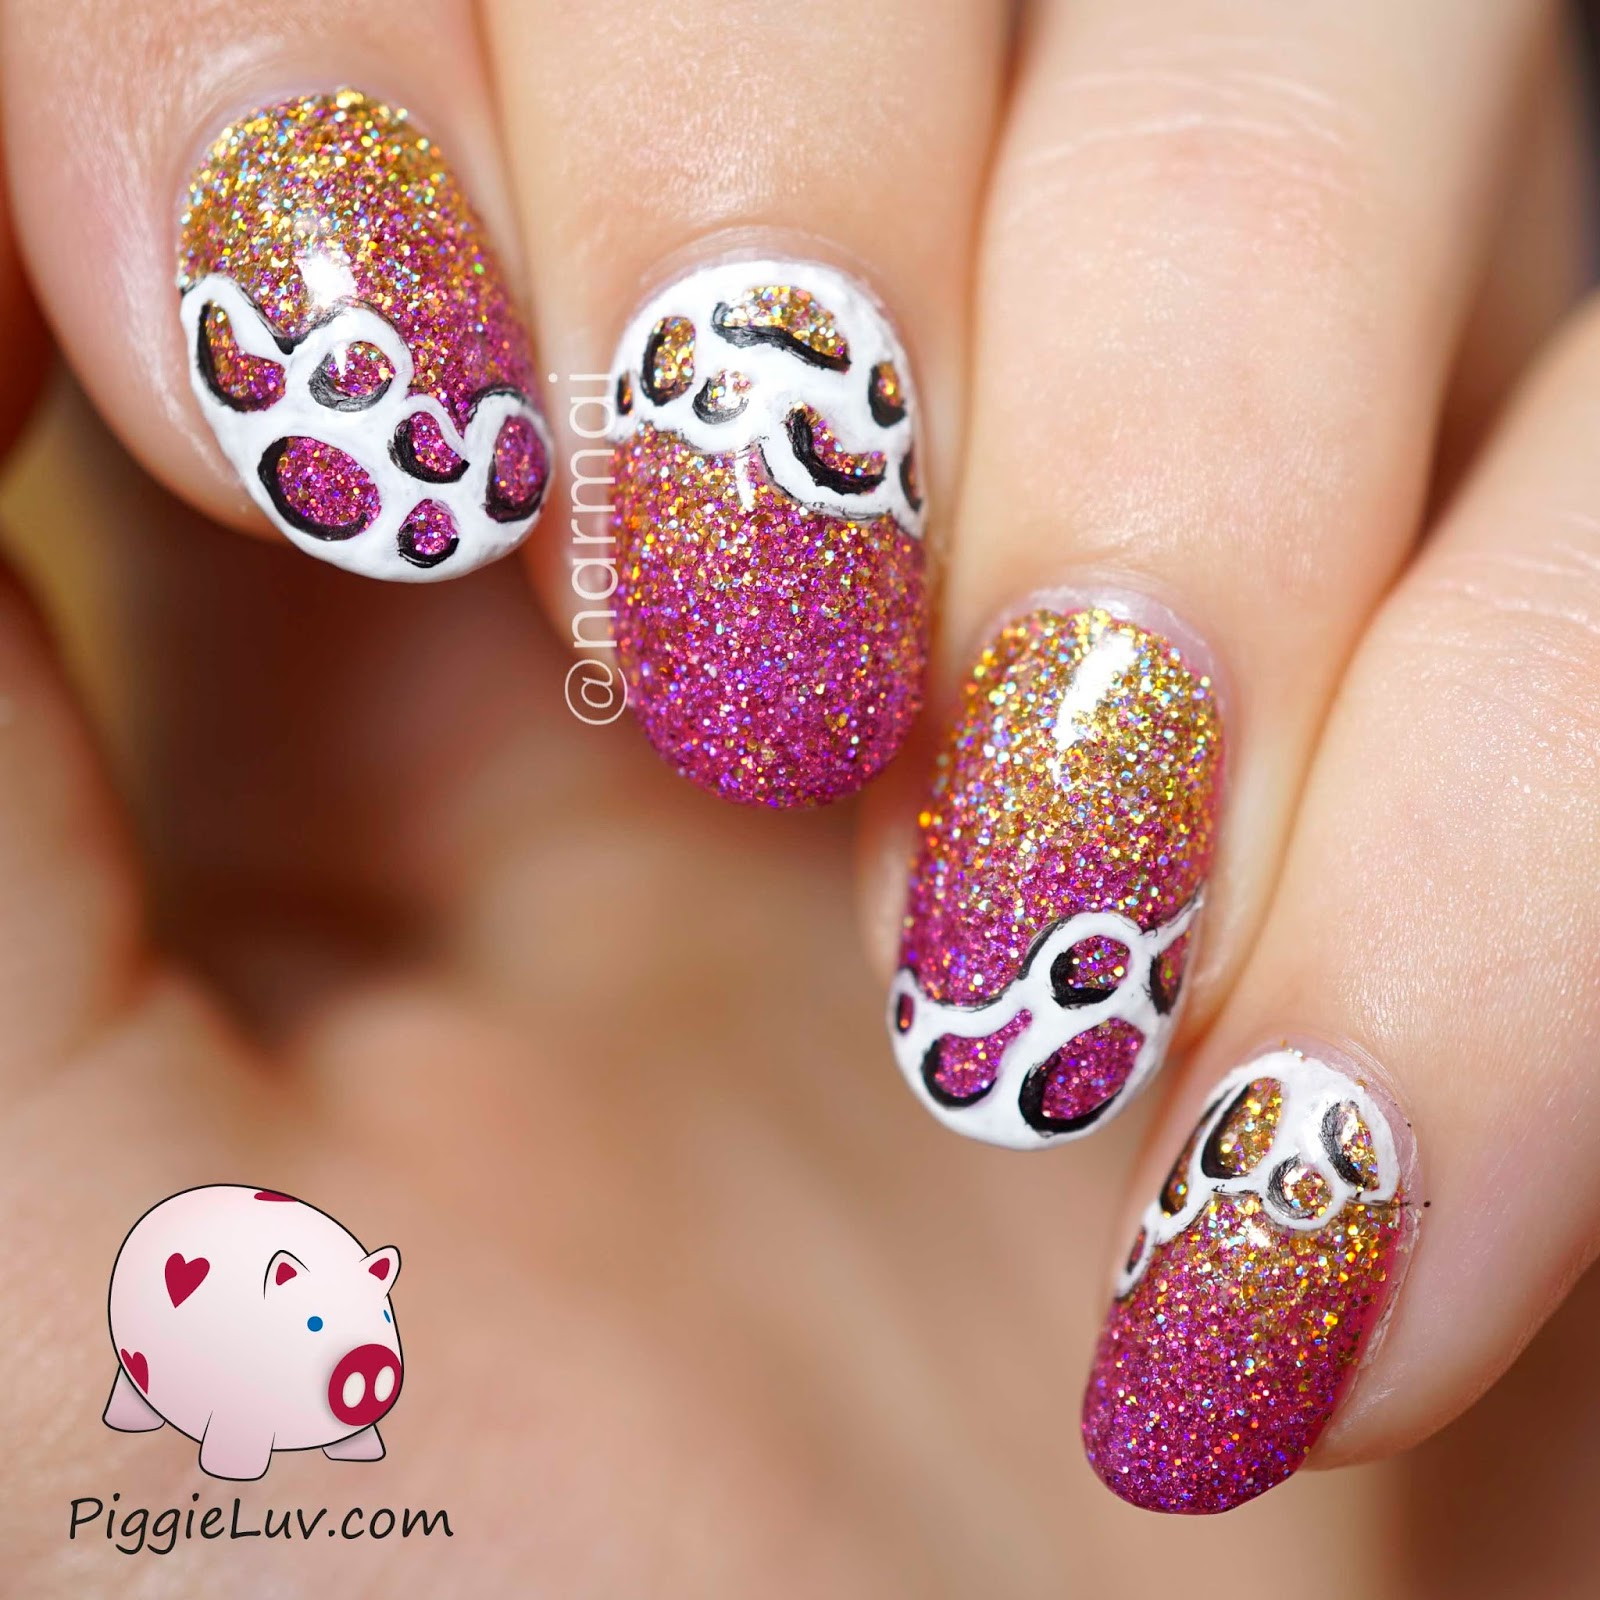 Girly Nail Art: PiggieLuv